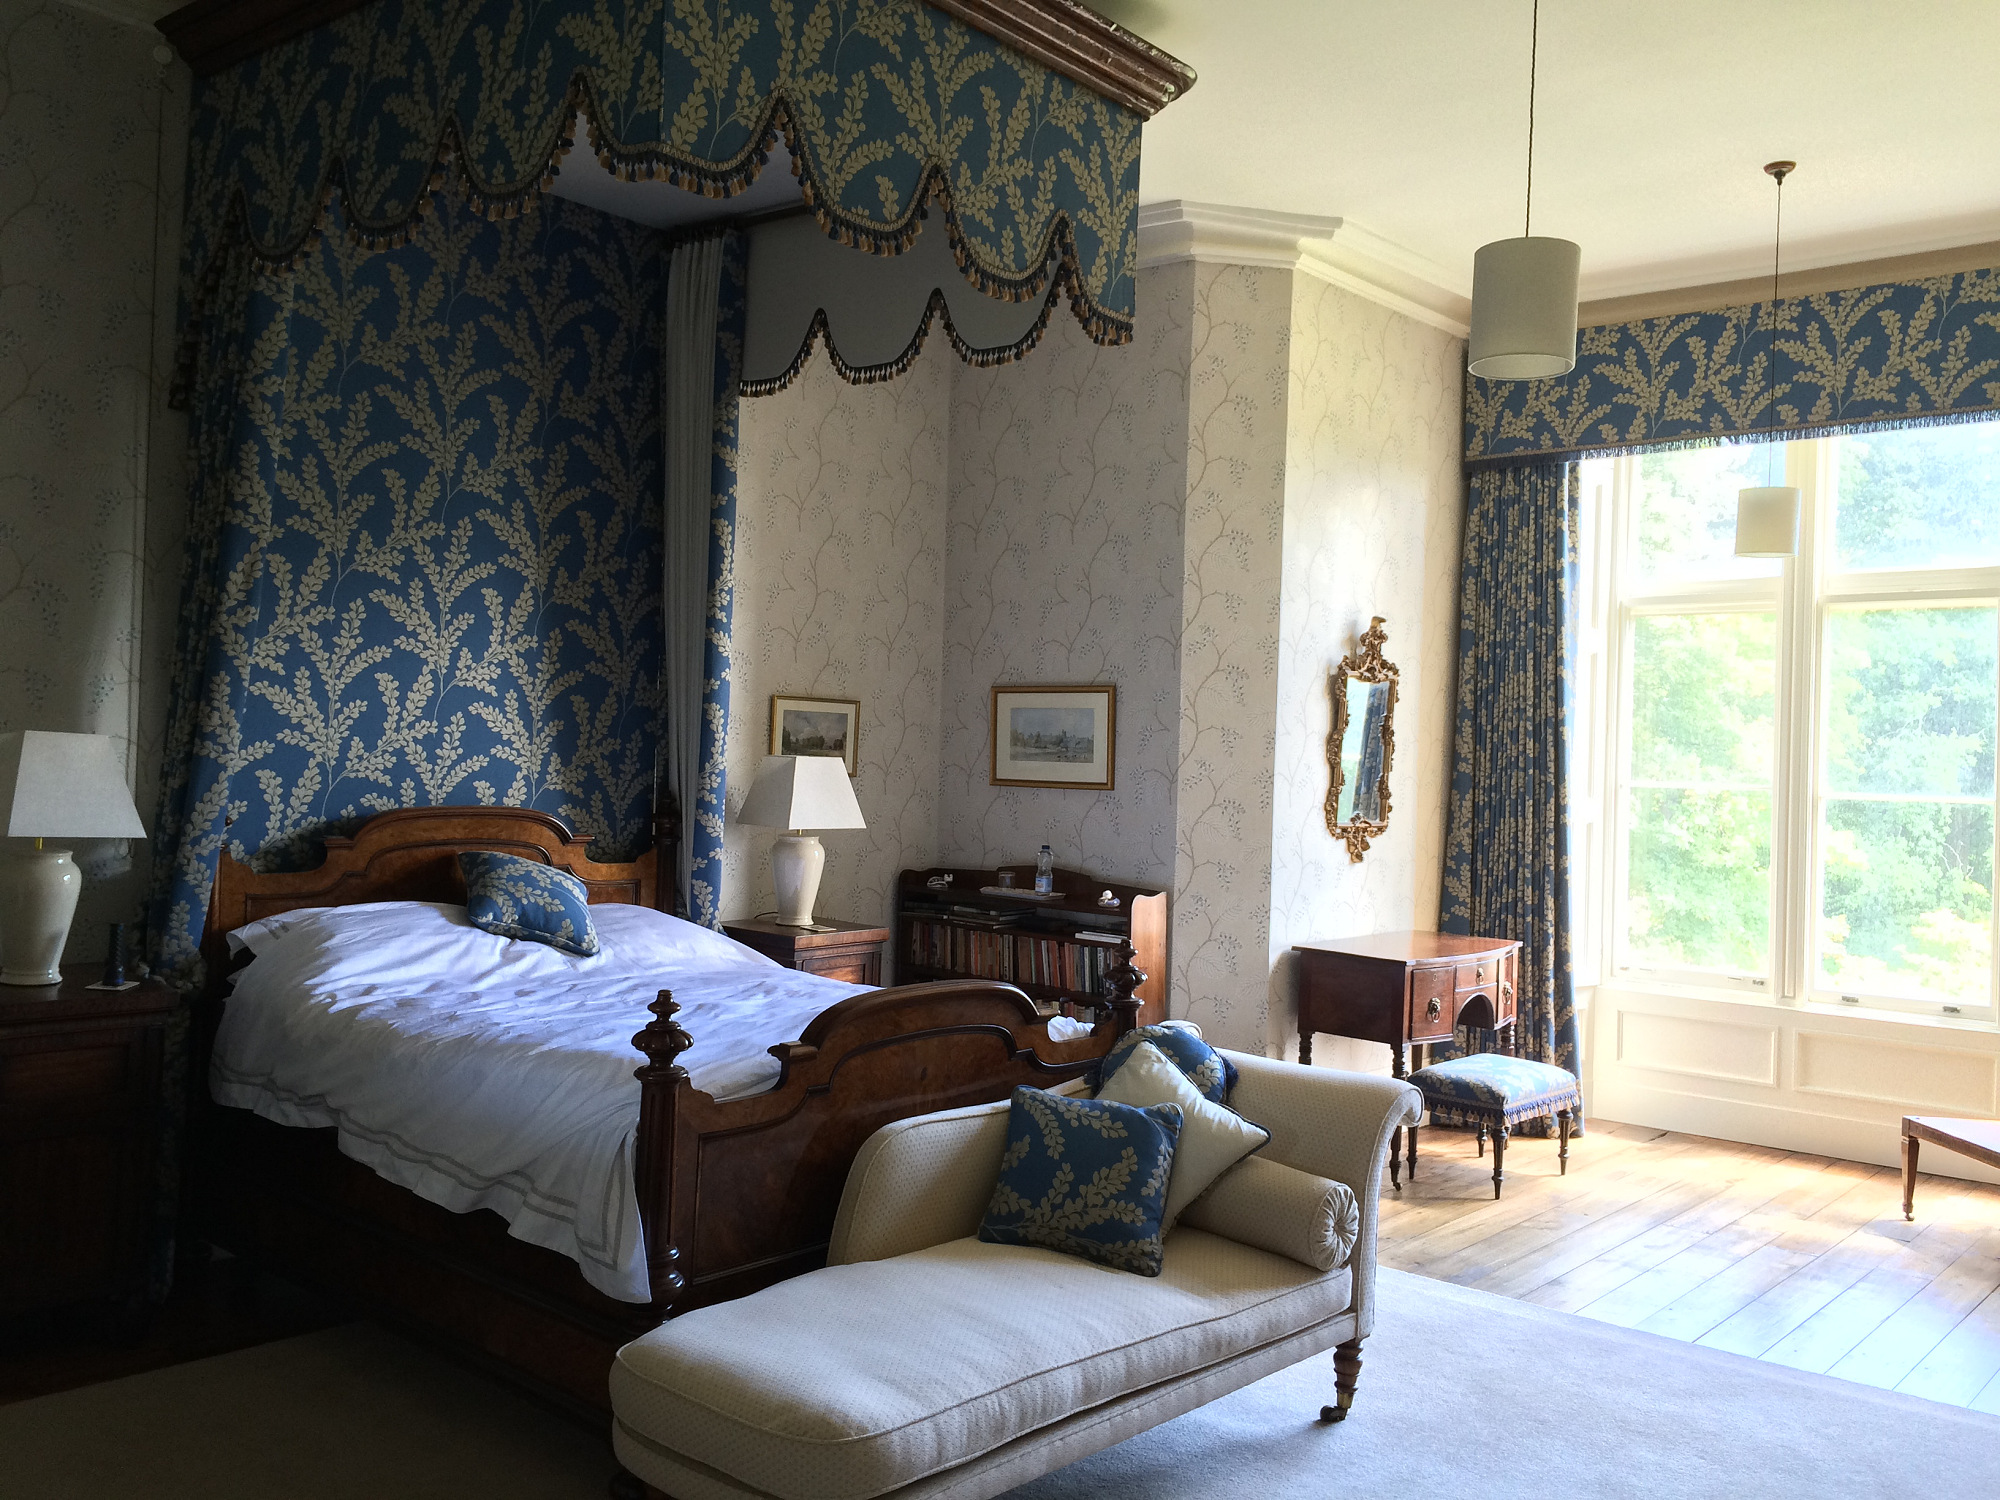 The Bridal suite at Stradey Castle